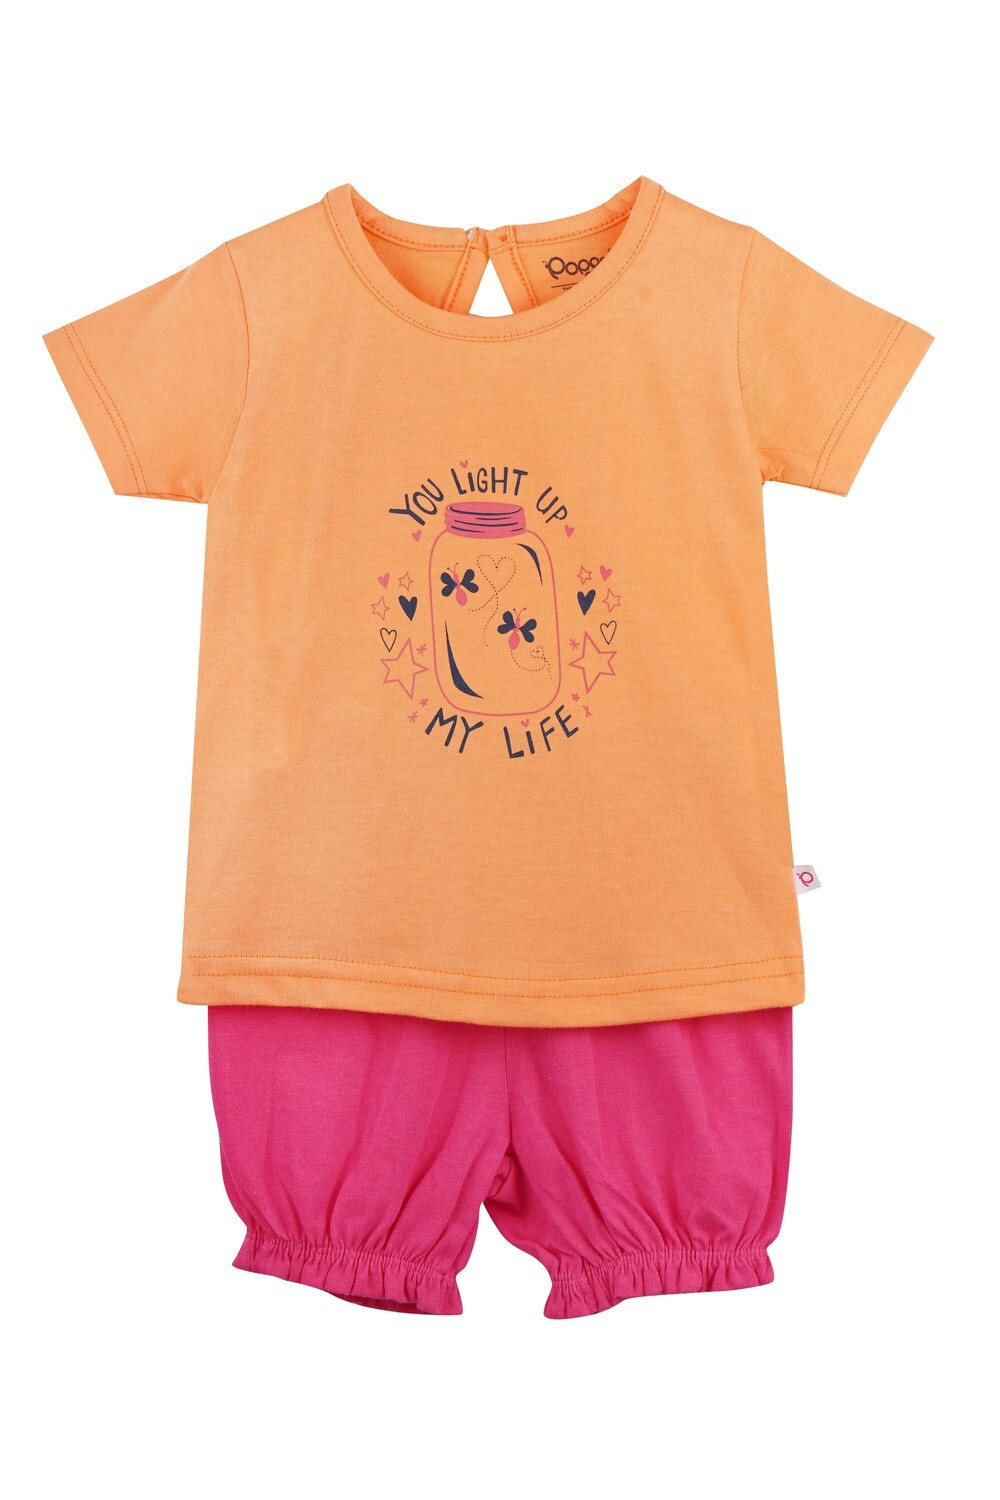 UNICORN Cantaloupe Half sleeve Top and Trouser for Baby Girls